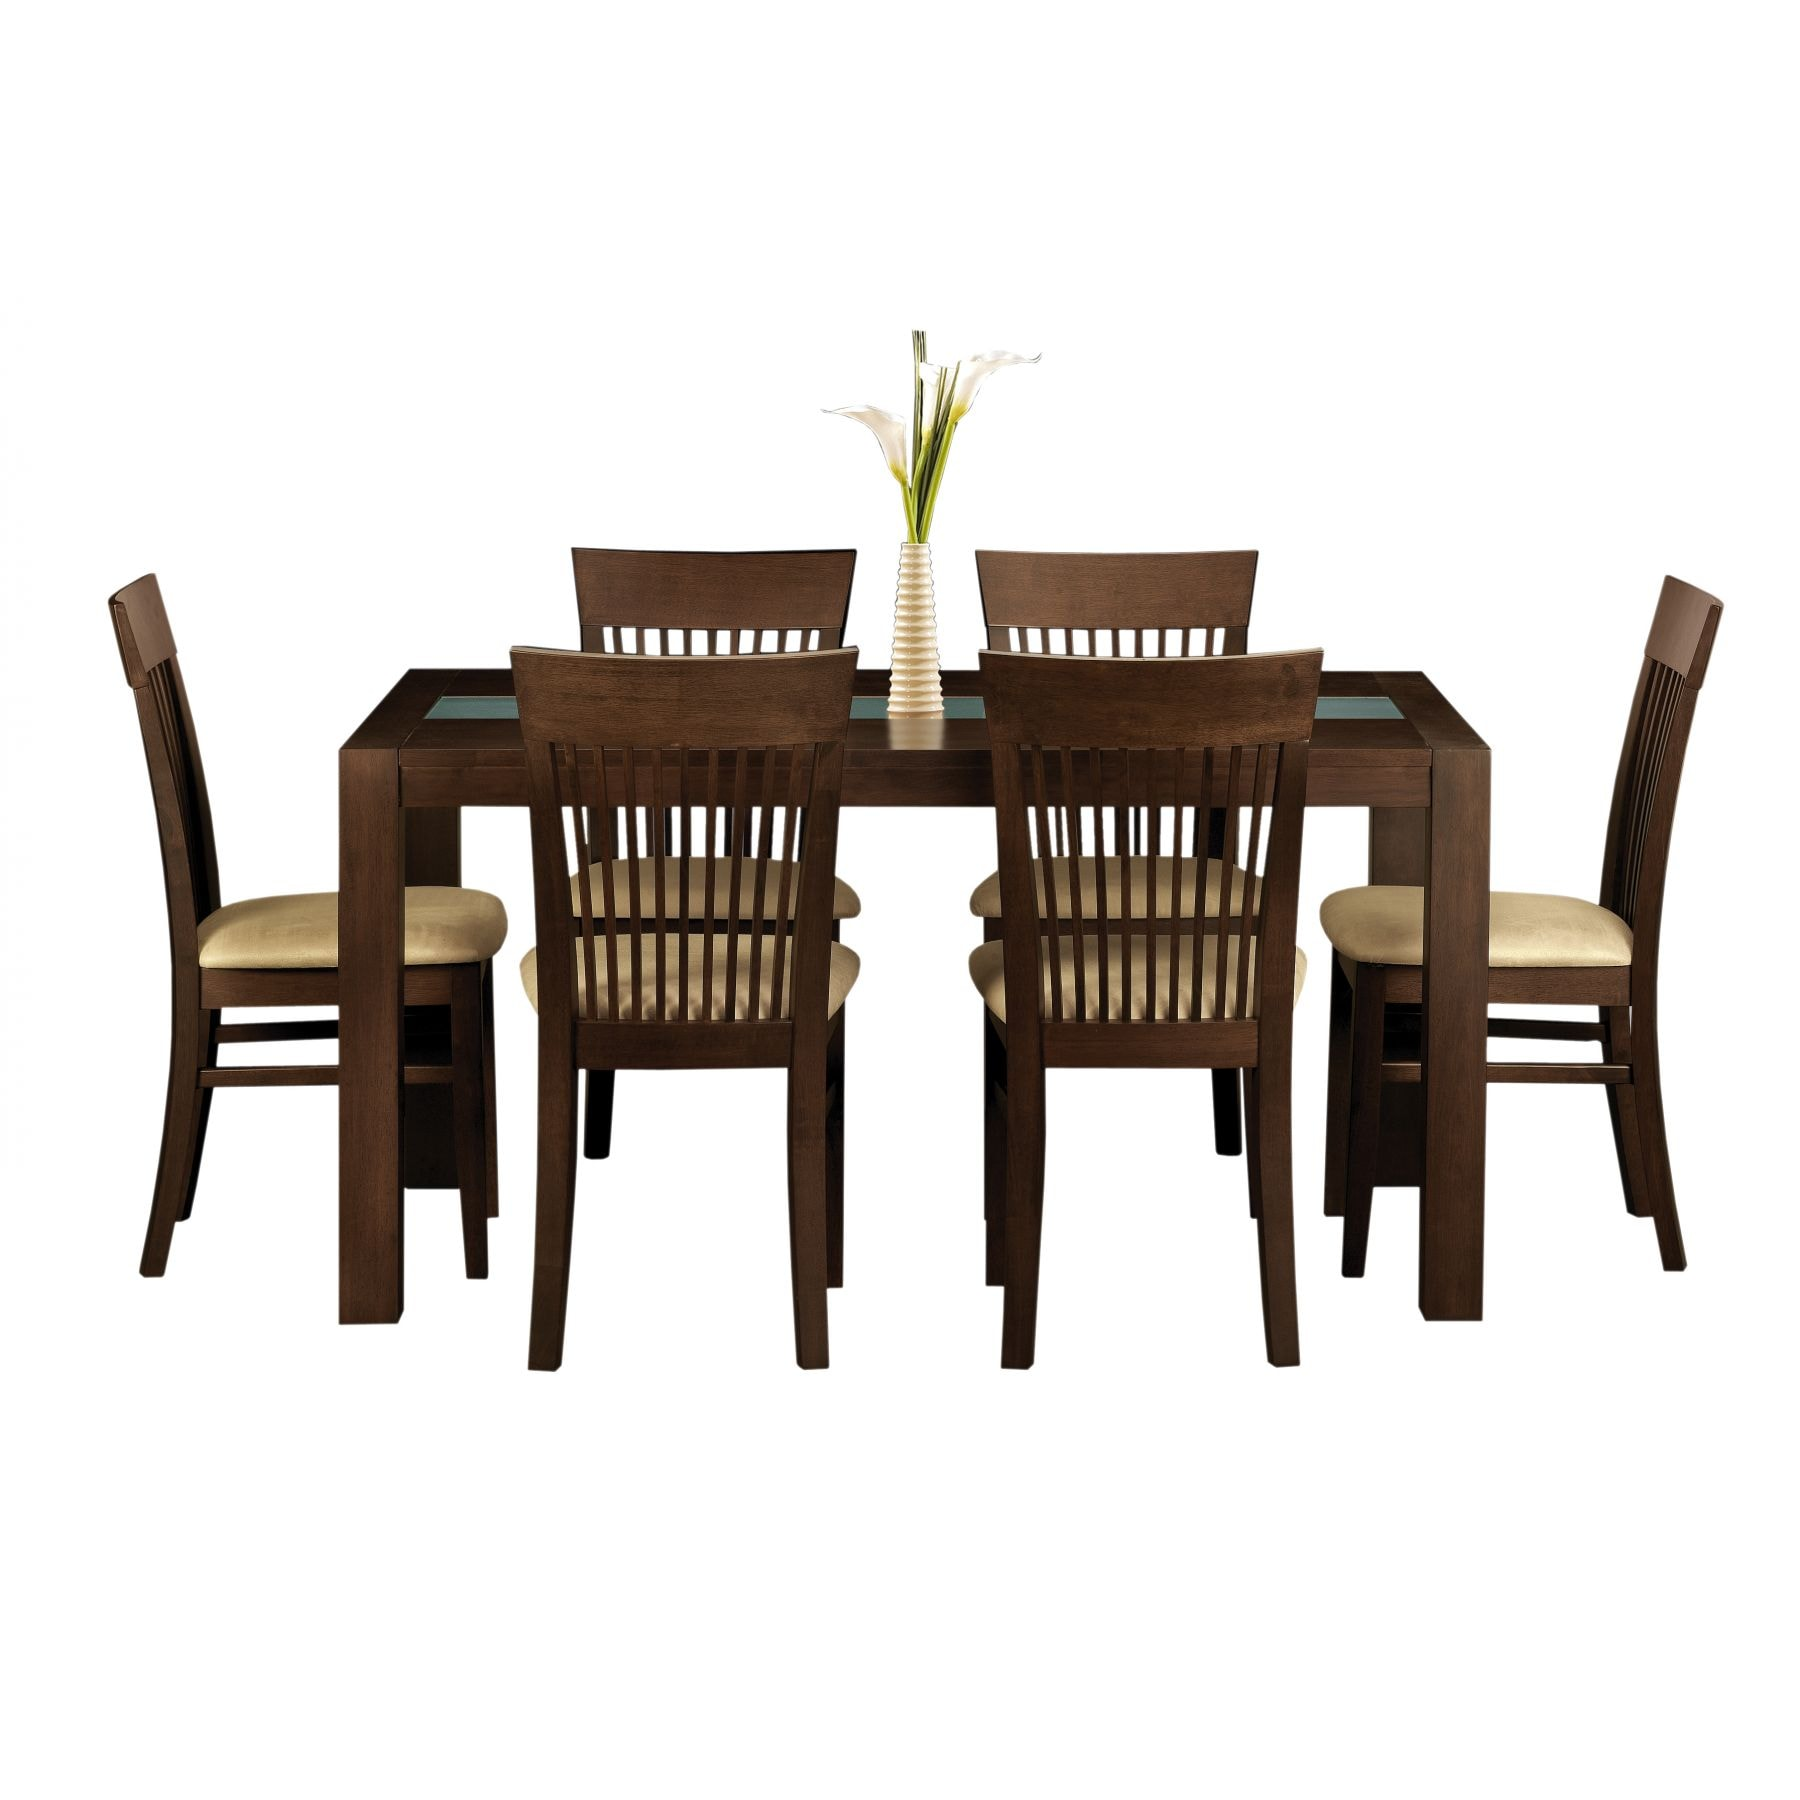 Santiago dining table table chairs from homesdirect 365 uk santiago dining table dzzzfo